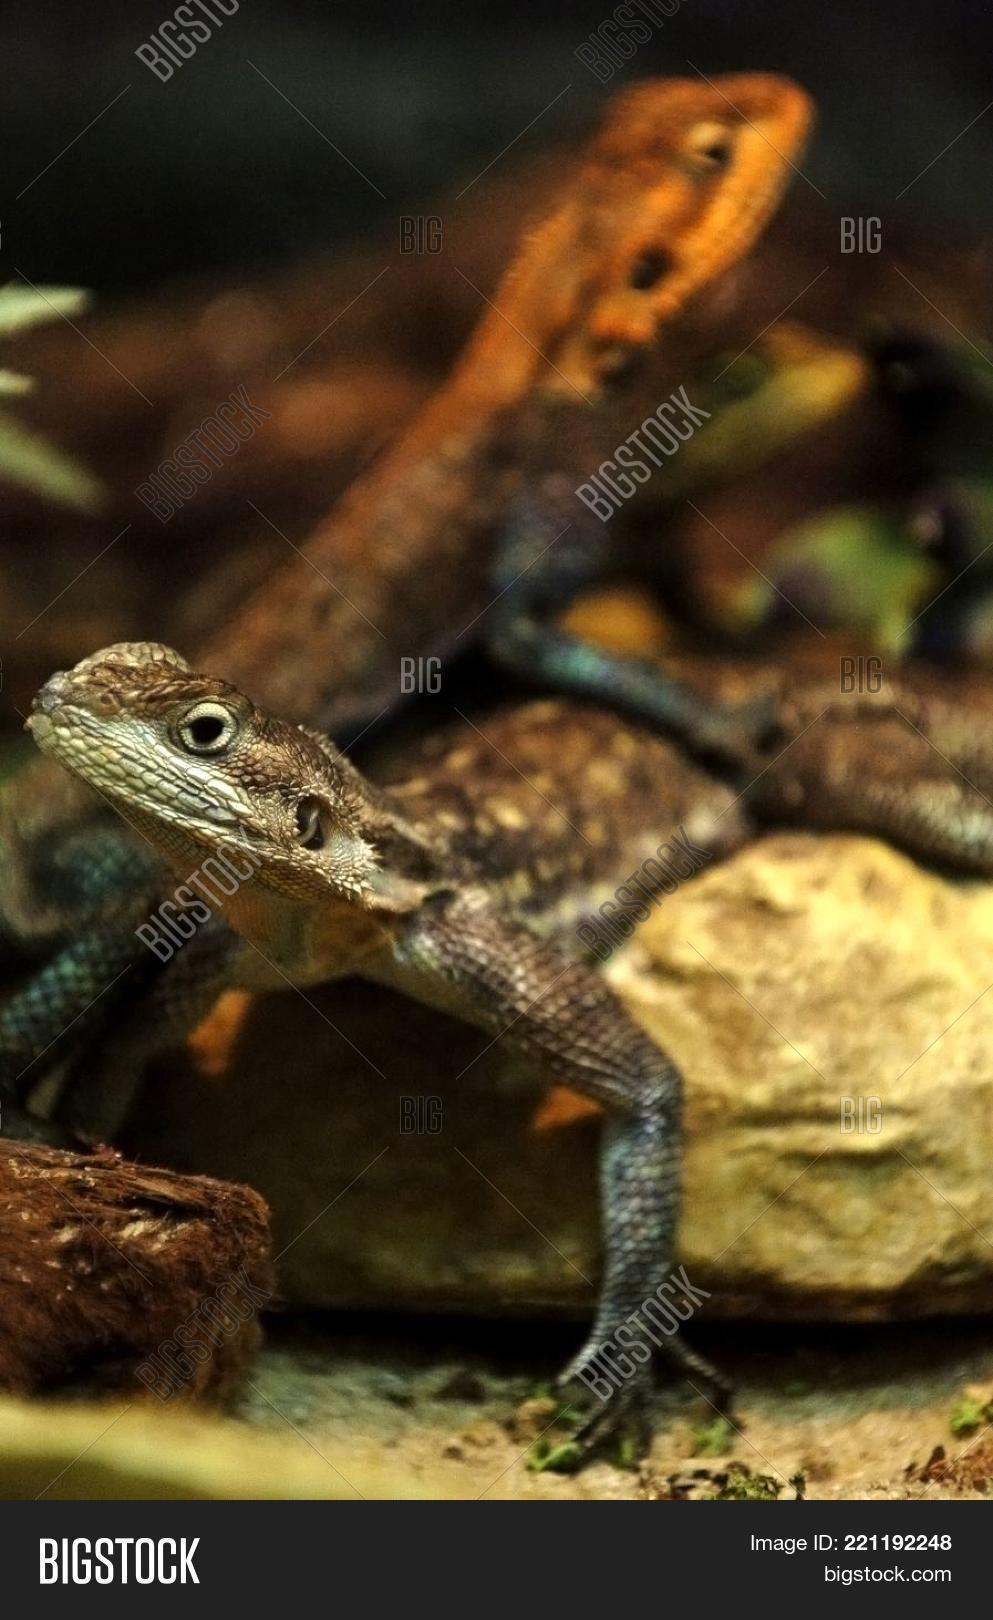 Two Small Cute Lizards Image Photo Free Trial Bigstock